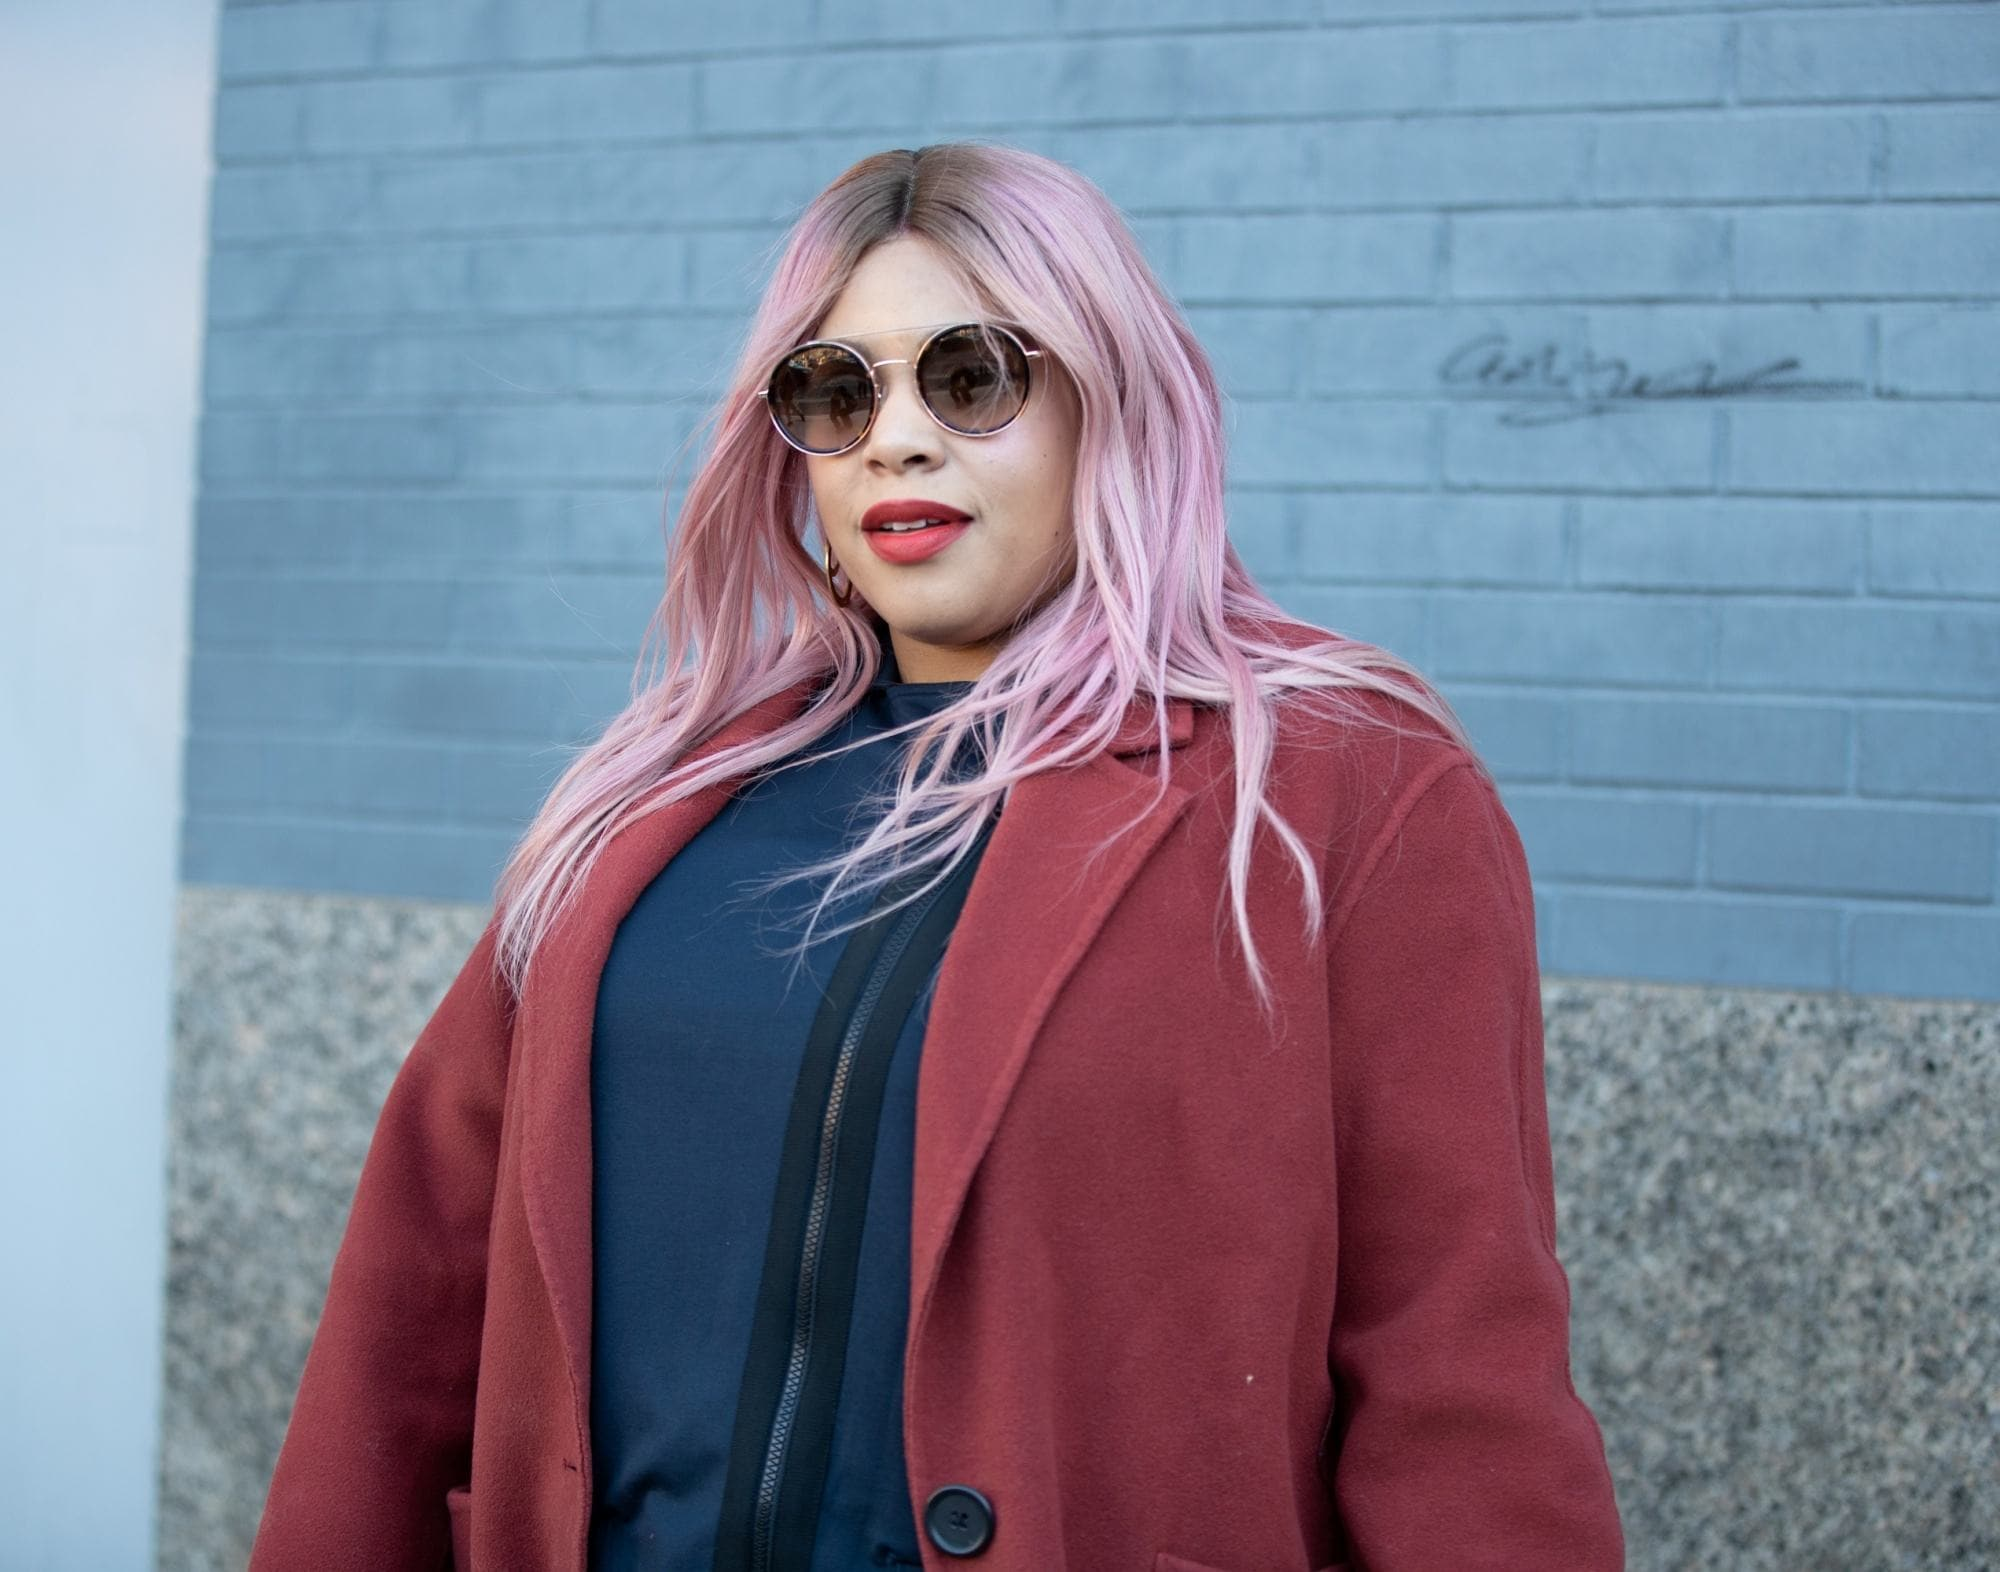 Street style hair inspiration: Woman with long pink hair wearing a red coat outdoors